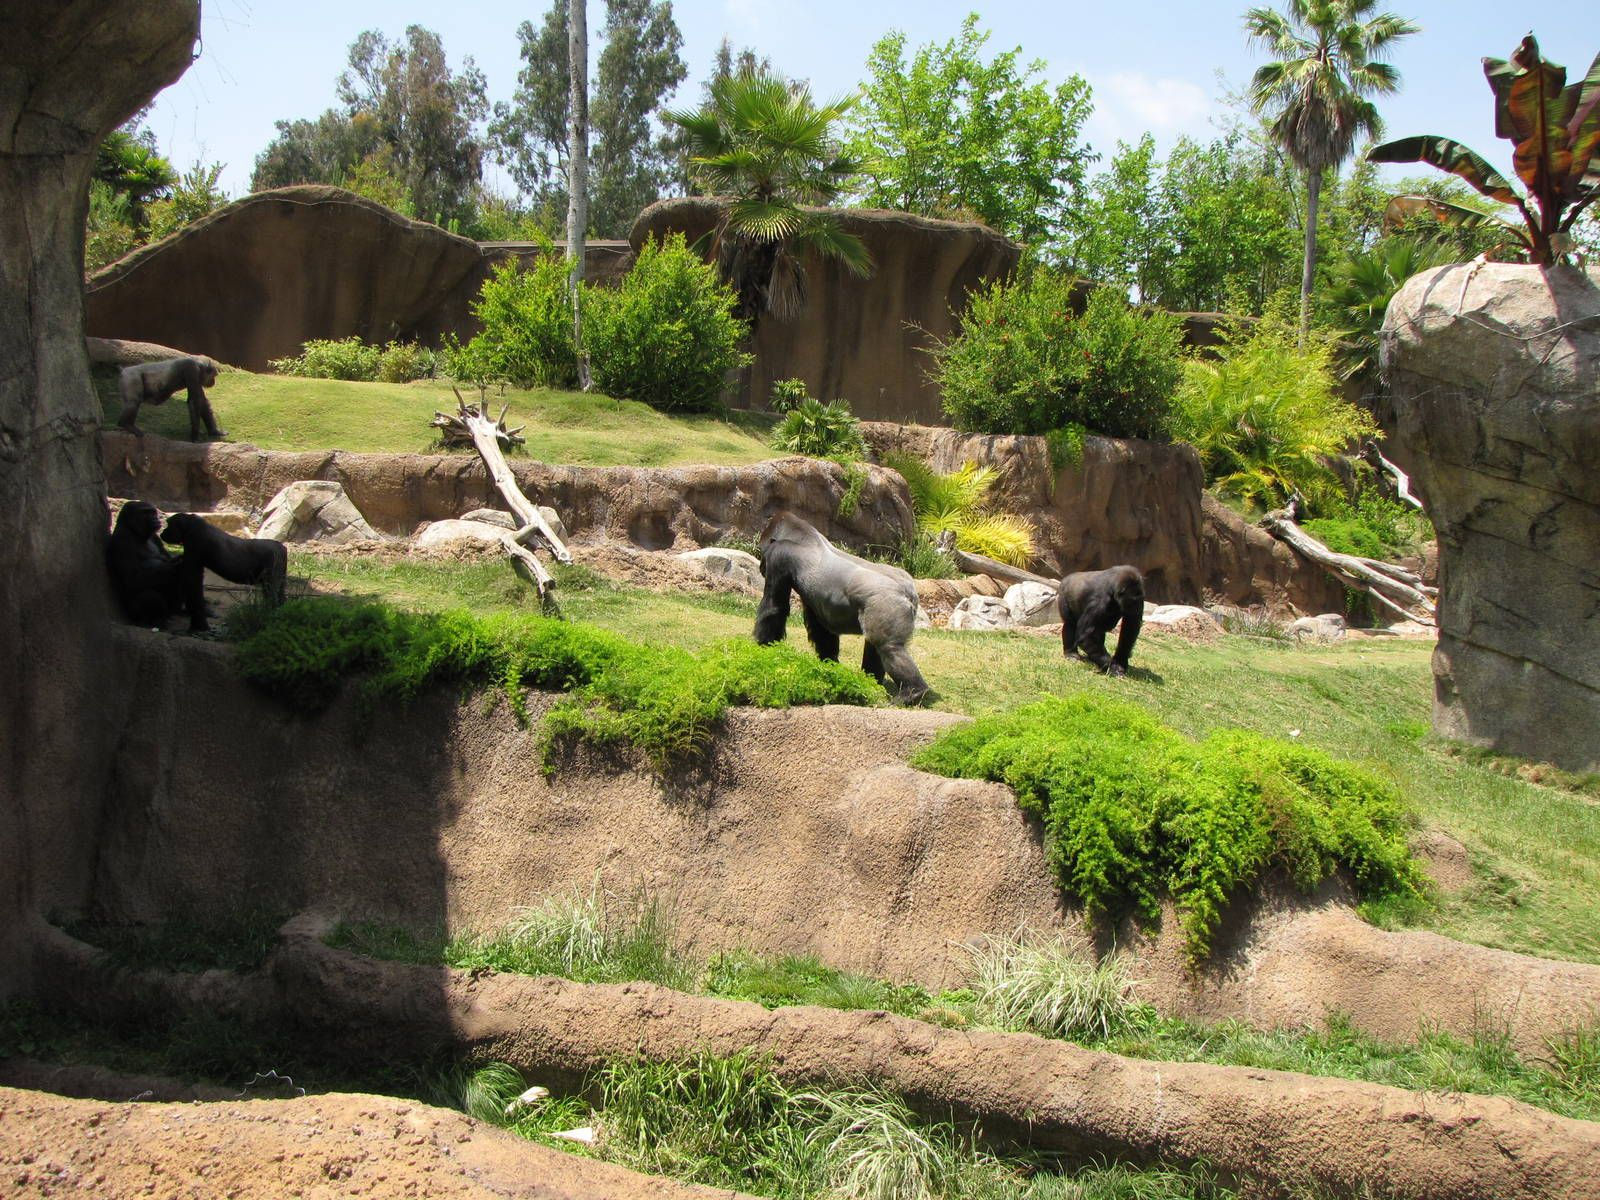 Campo Gorilla Reserve Los Angeles Zoo Botanical Gardens Gallery Los Angeles Zoo Zoo Animals